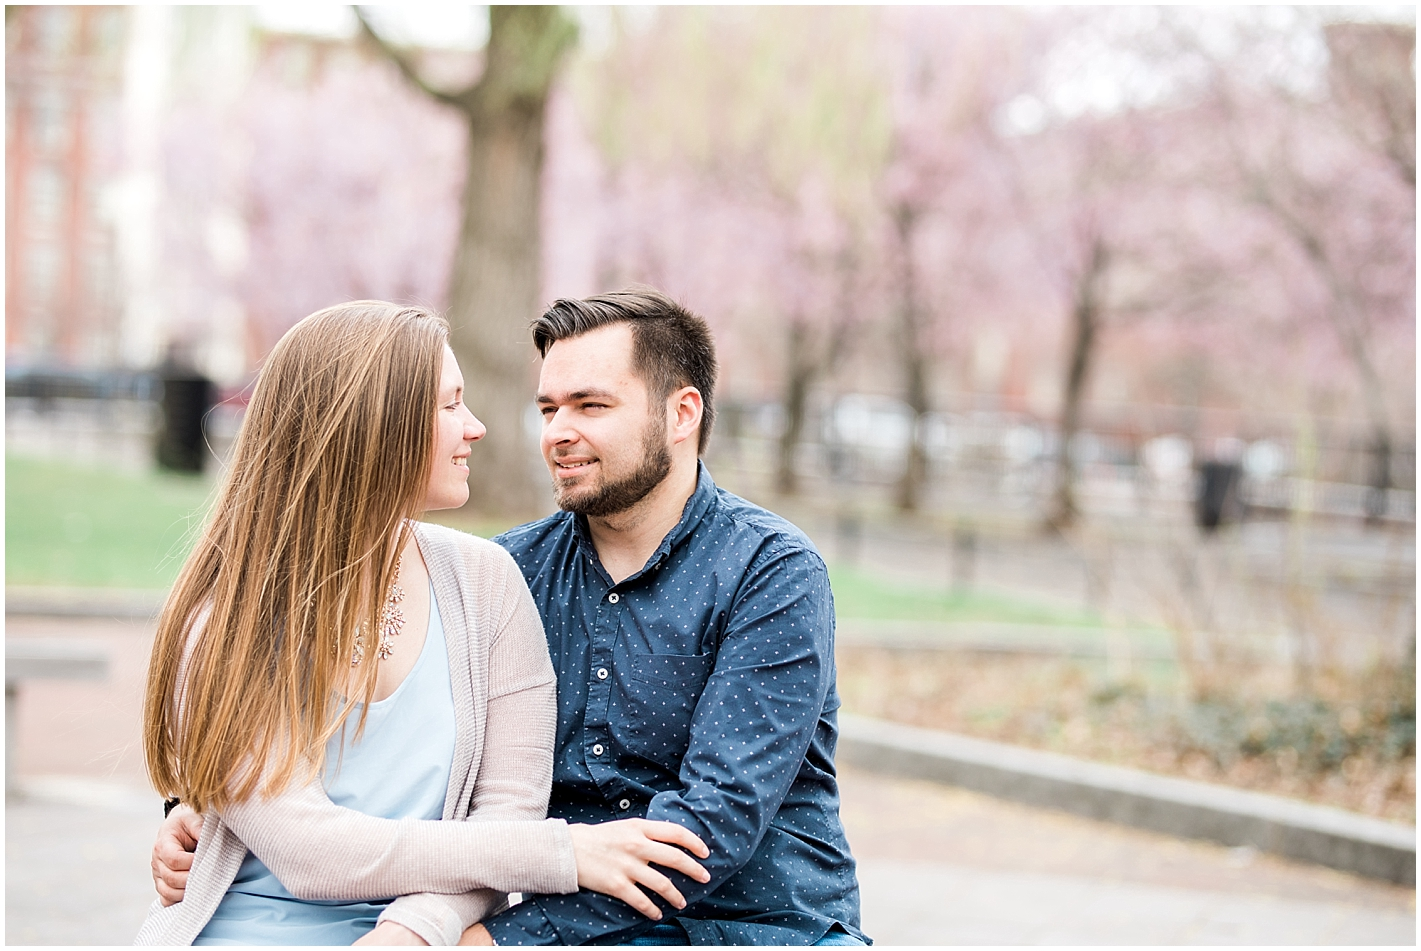 Downtown Lowell MA Engagement Session Photos by Alyssa Parker Photography